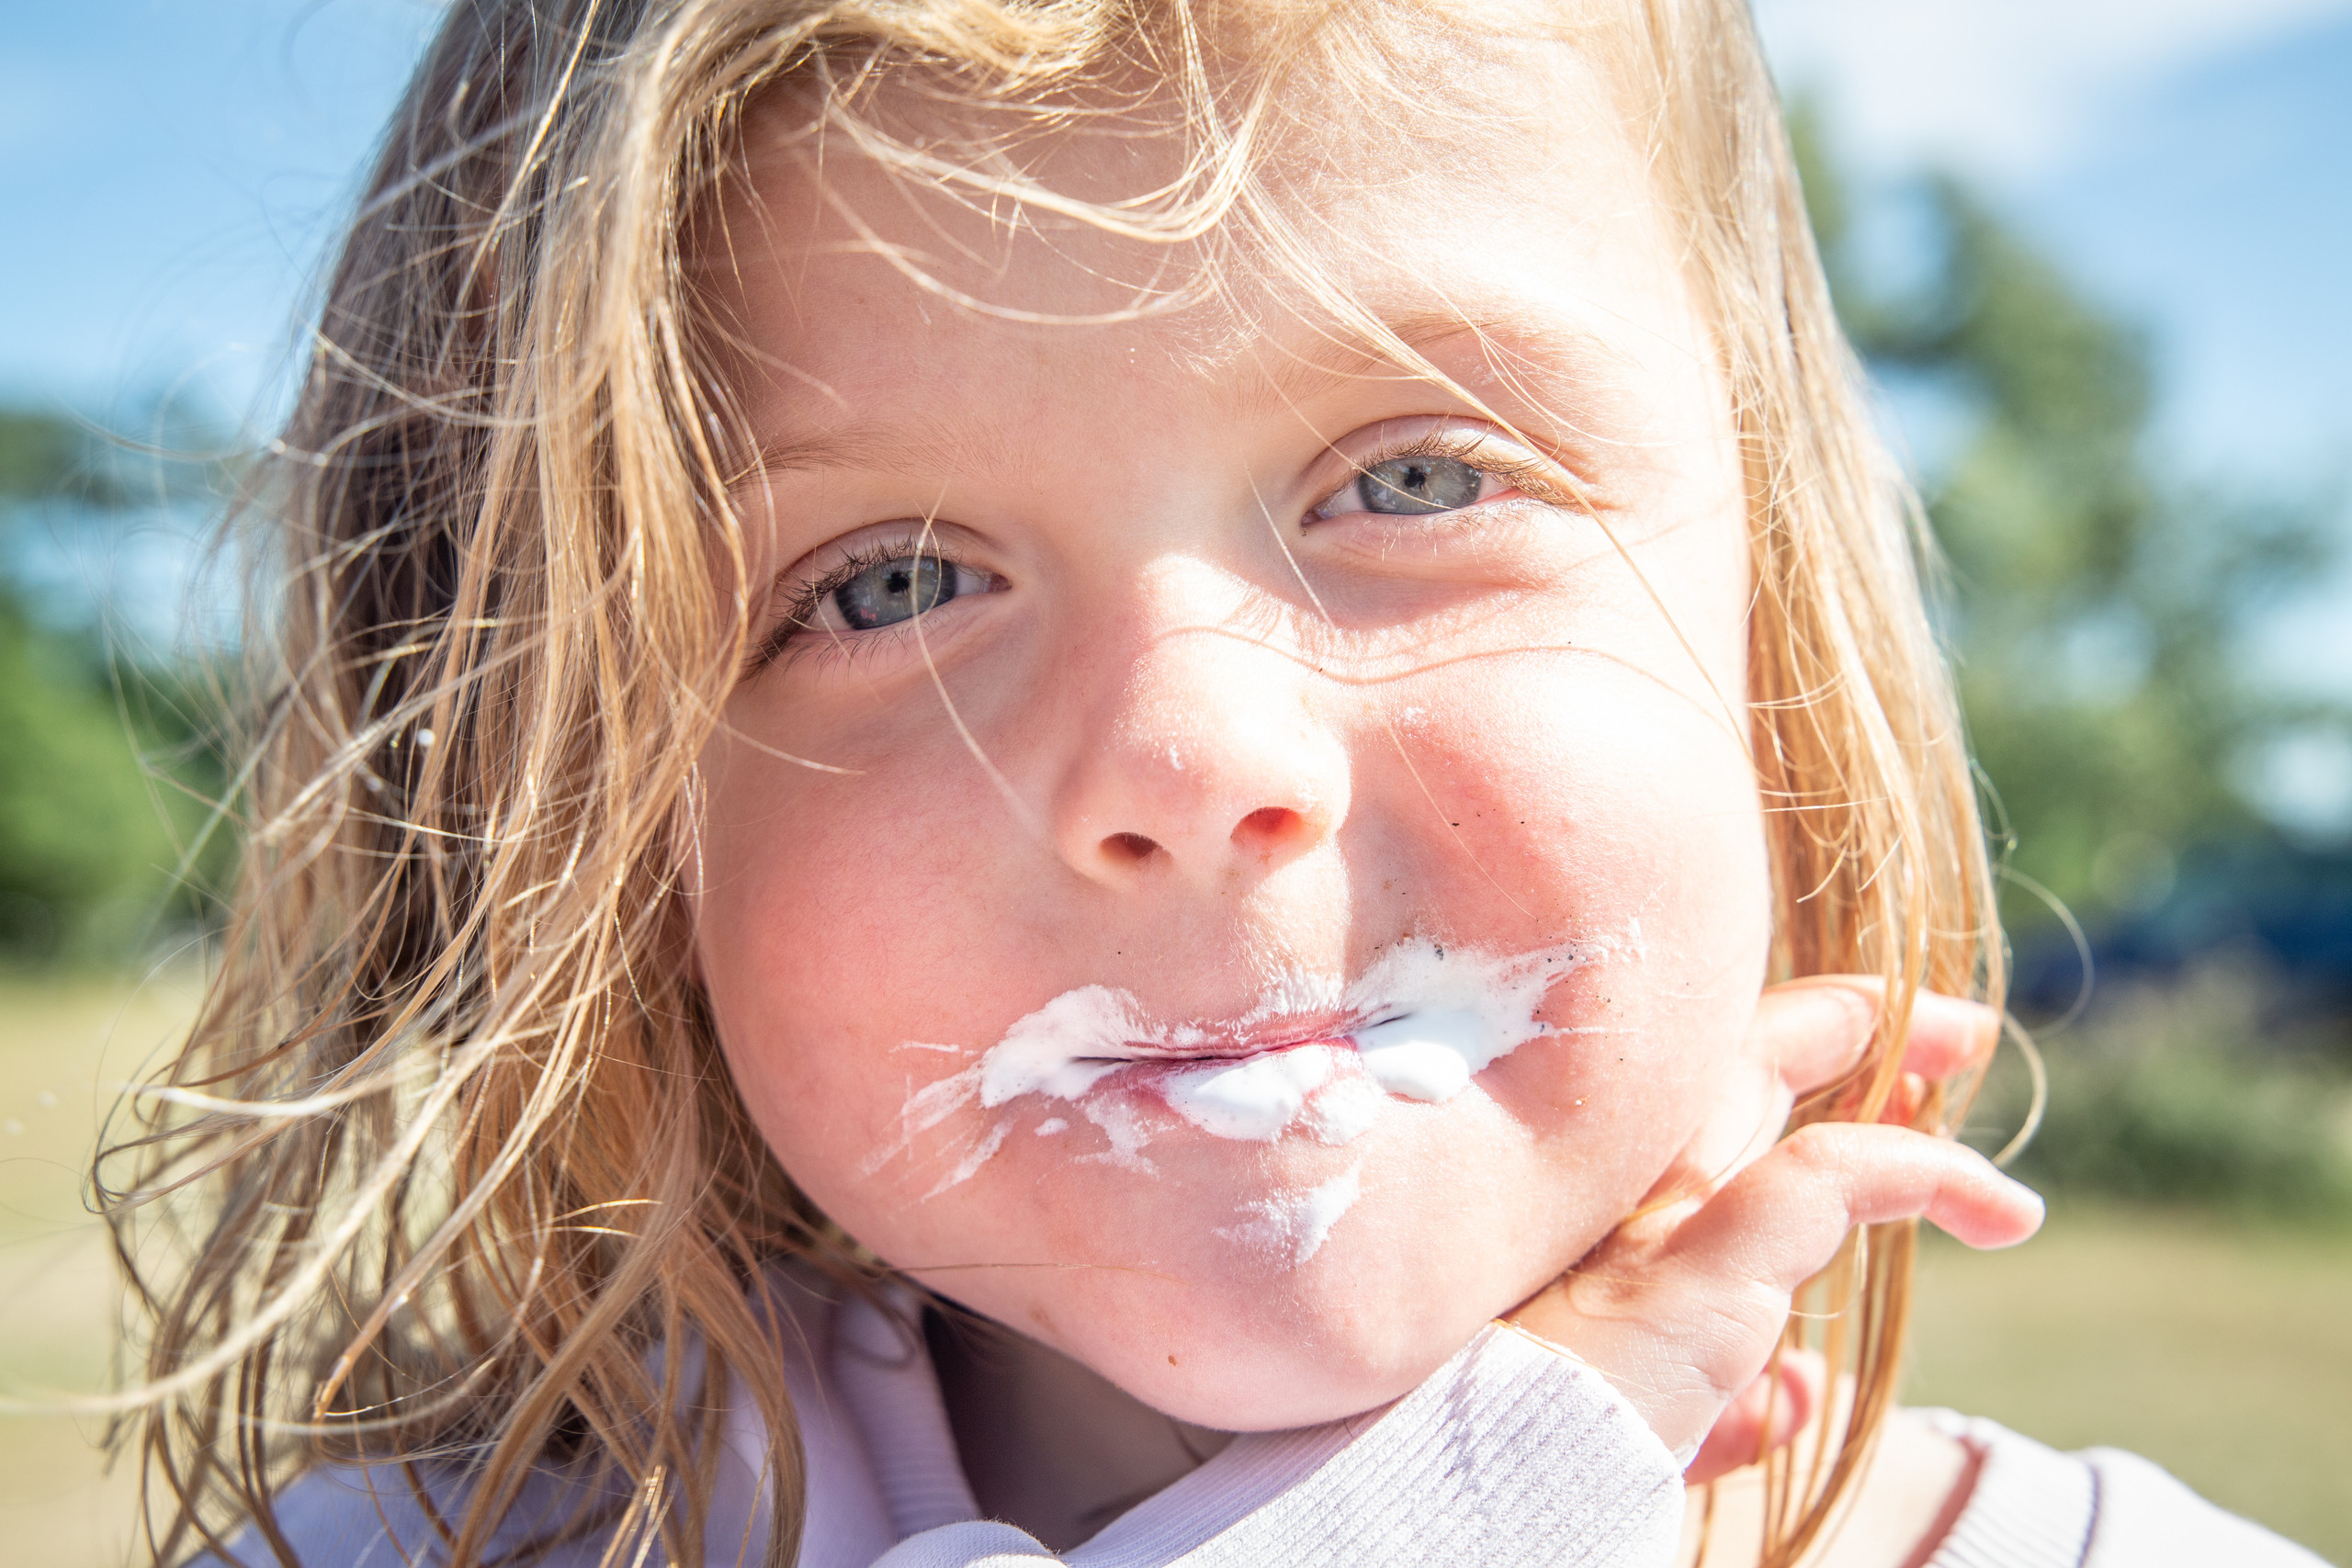 Joe's ice cream all over a child's face as she poses in swansea